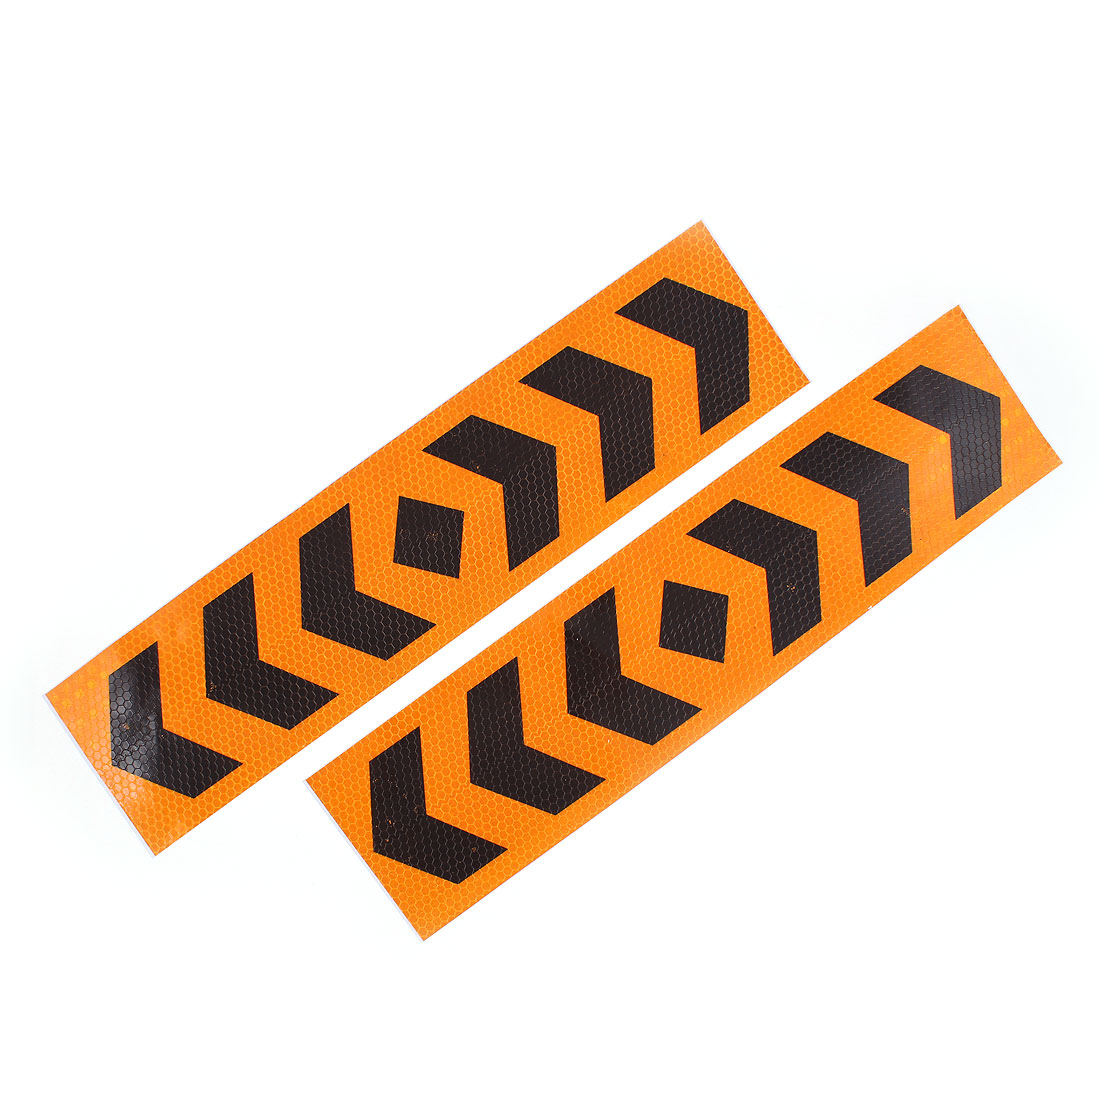 2 Pcs Plastic Arrows Printed Type Car SUV Reflective Warning Sign Sticker Tape Yellow Black